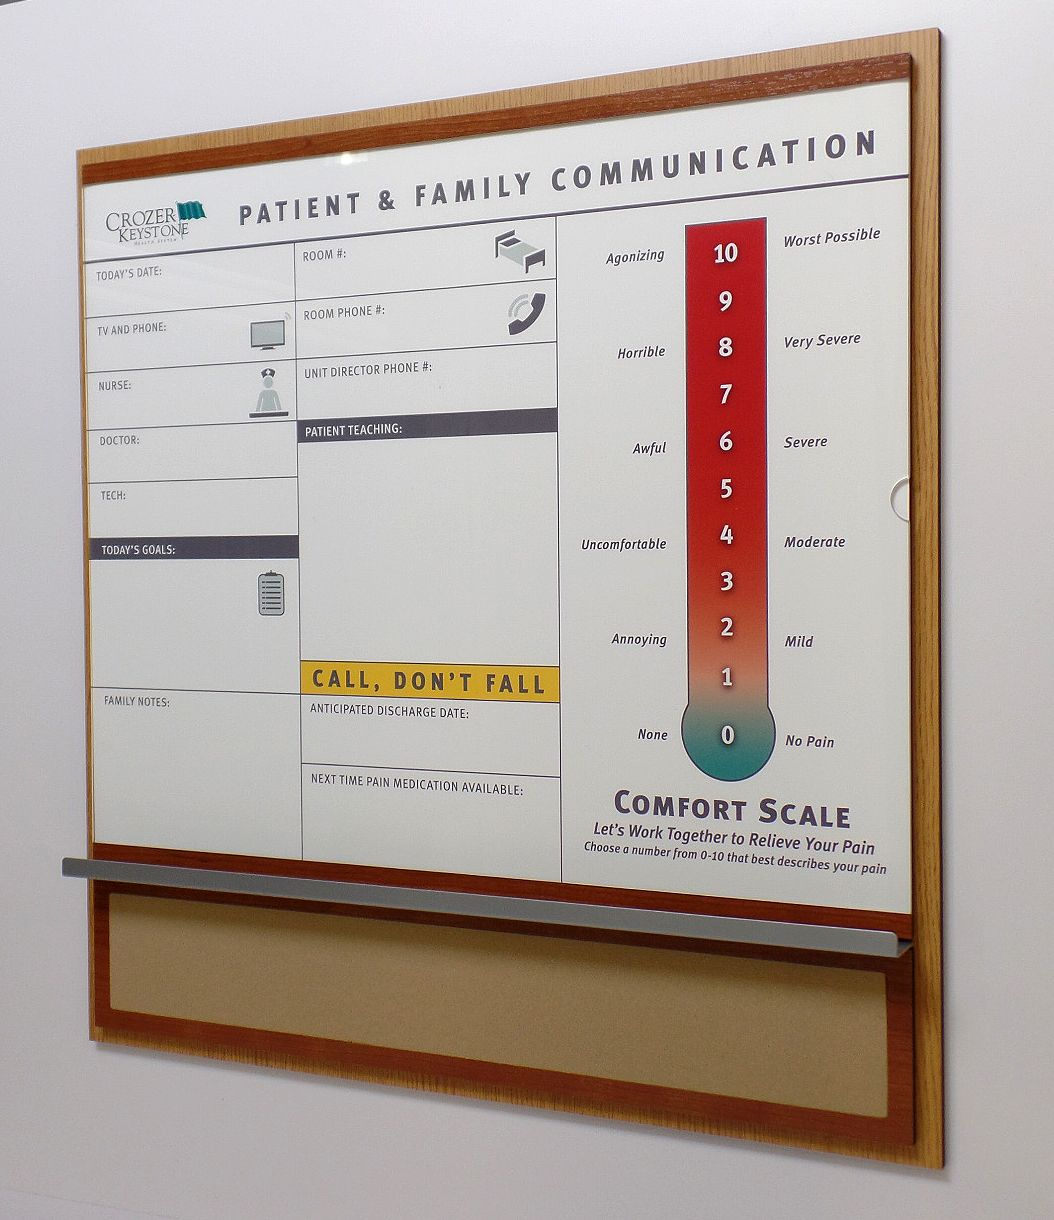 View In Patient Room Dry Erase Magnetic Communication